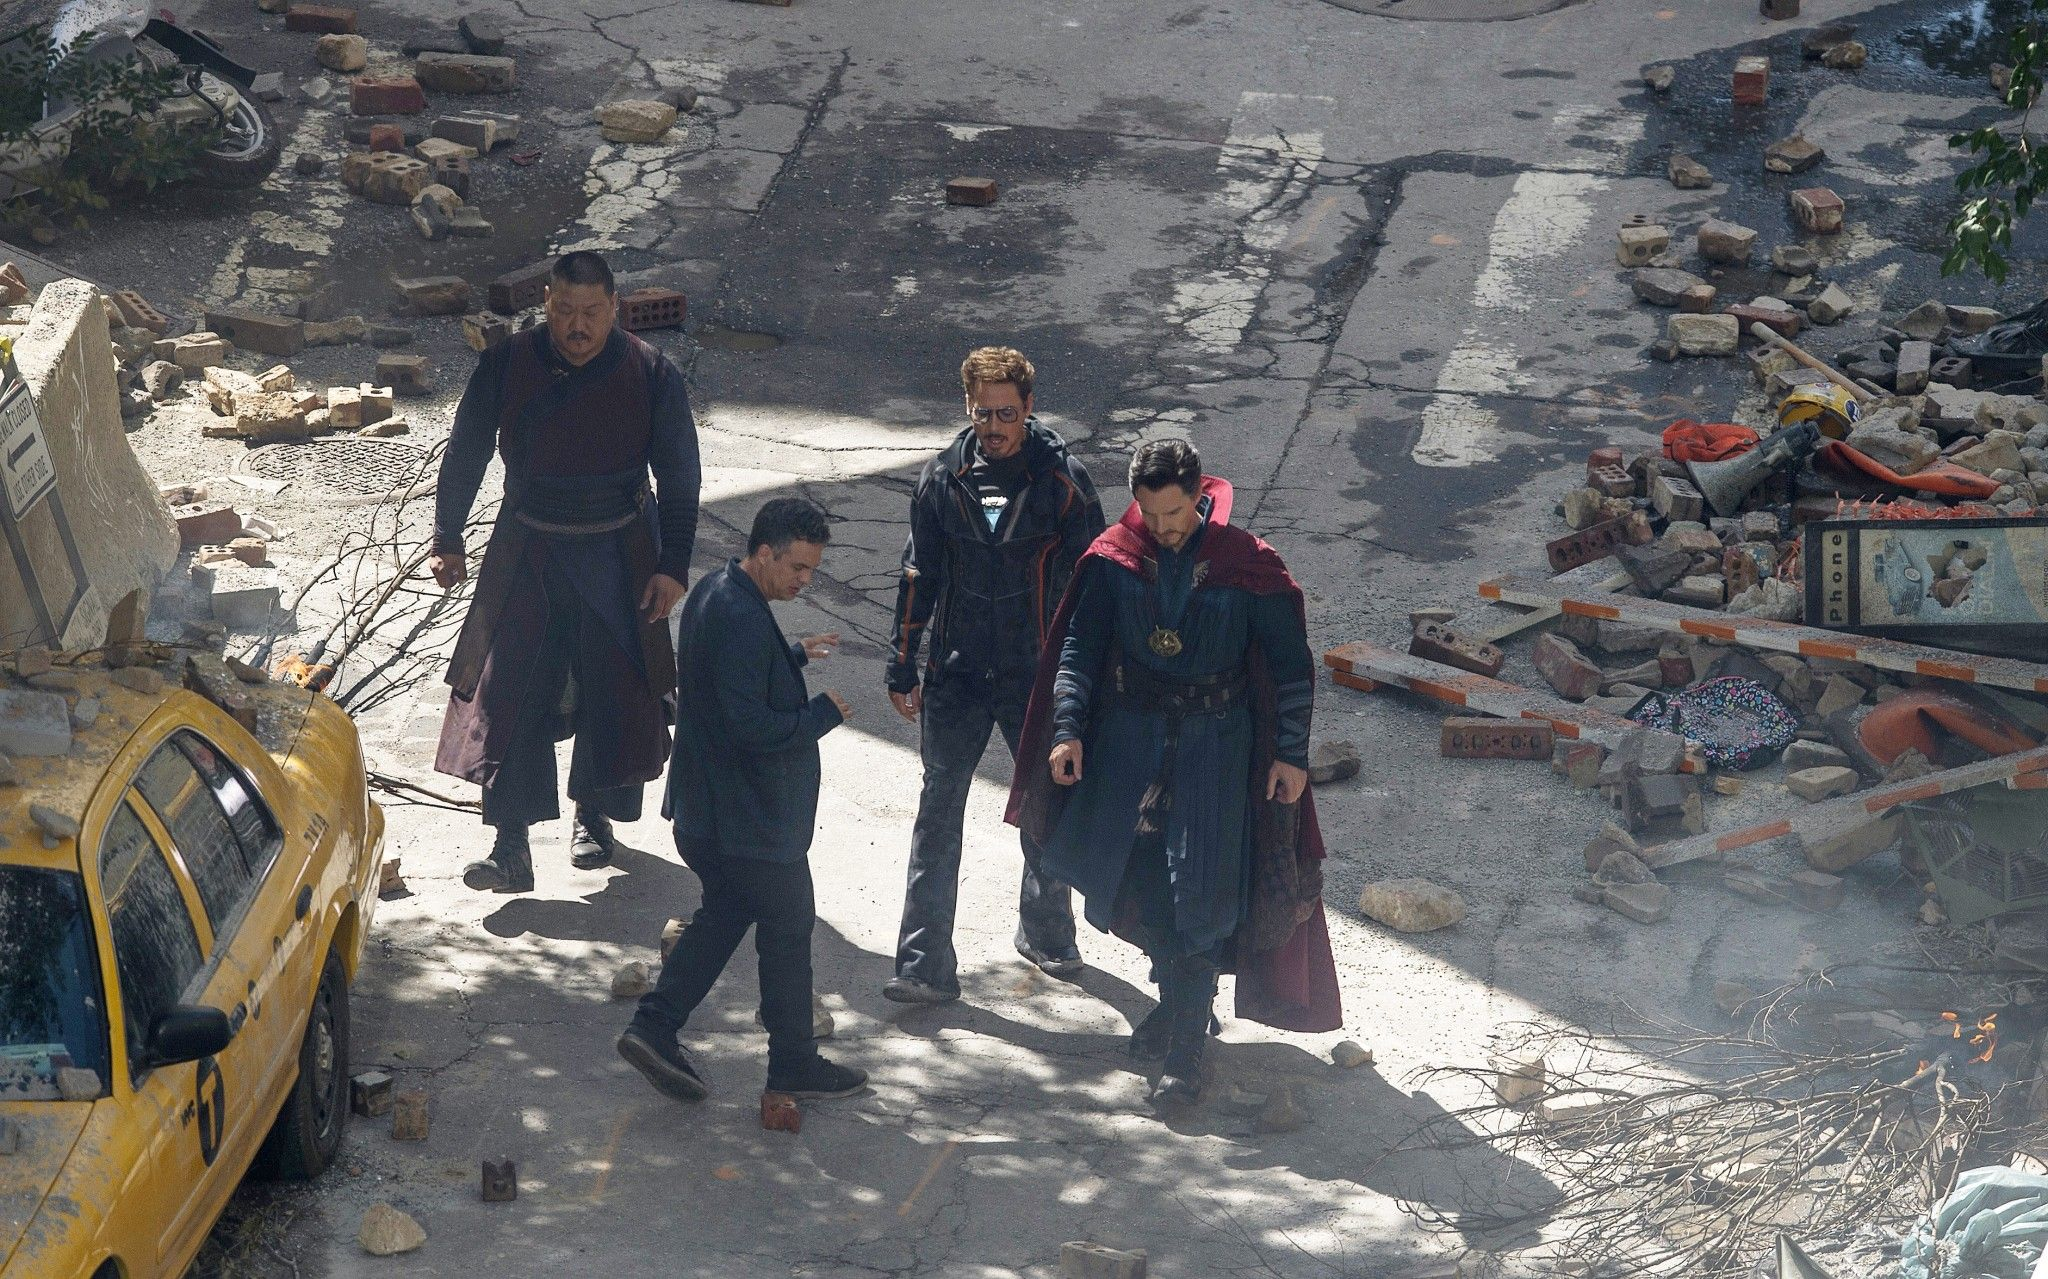 What's going on in this leaked set photo from 'Avengers: Infinity War'?